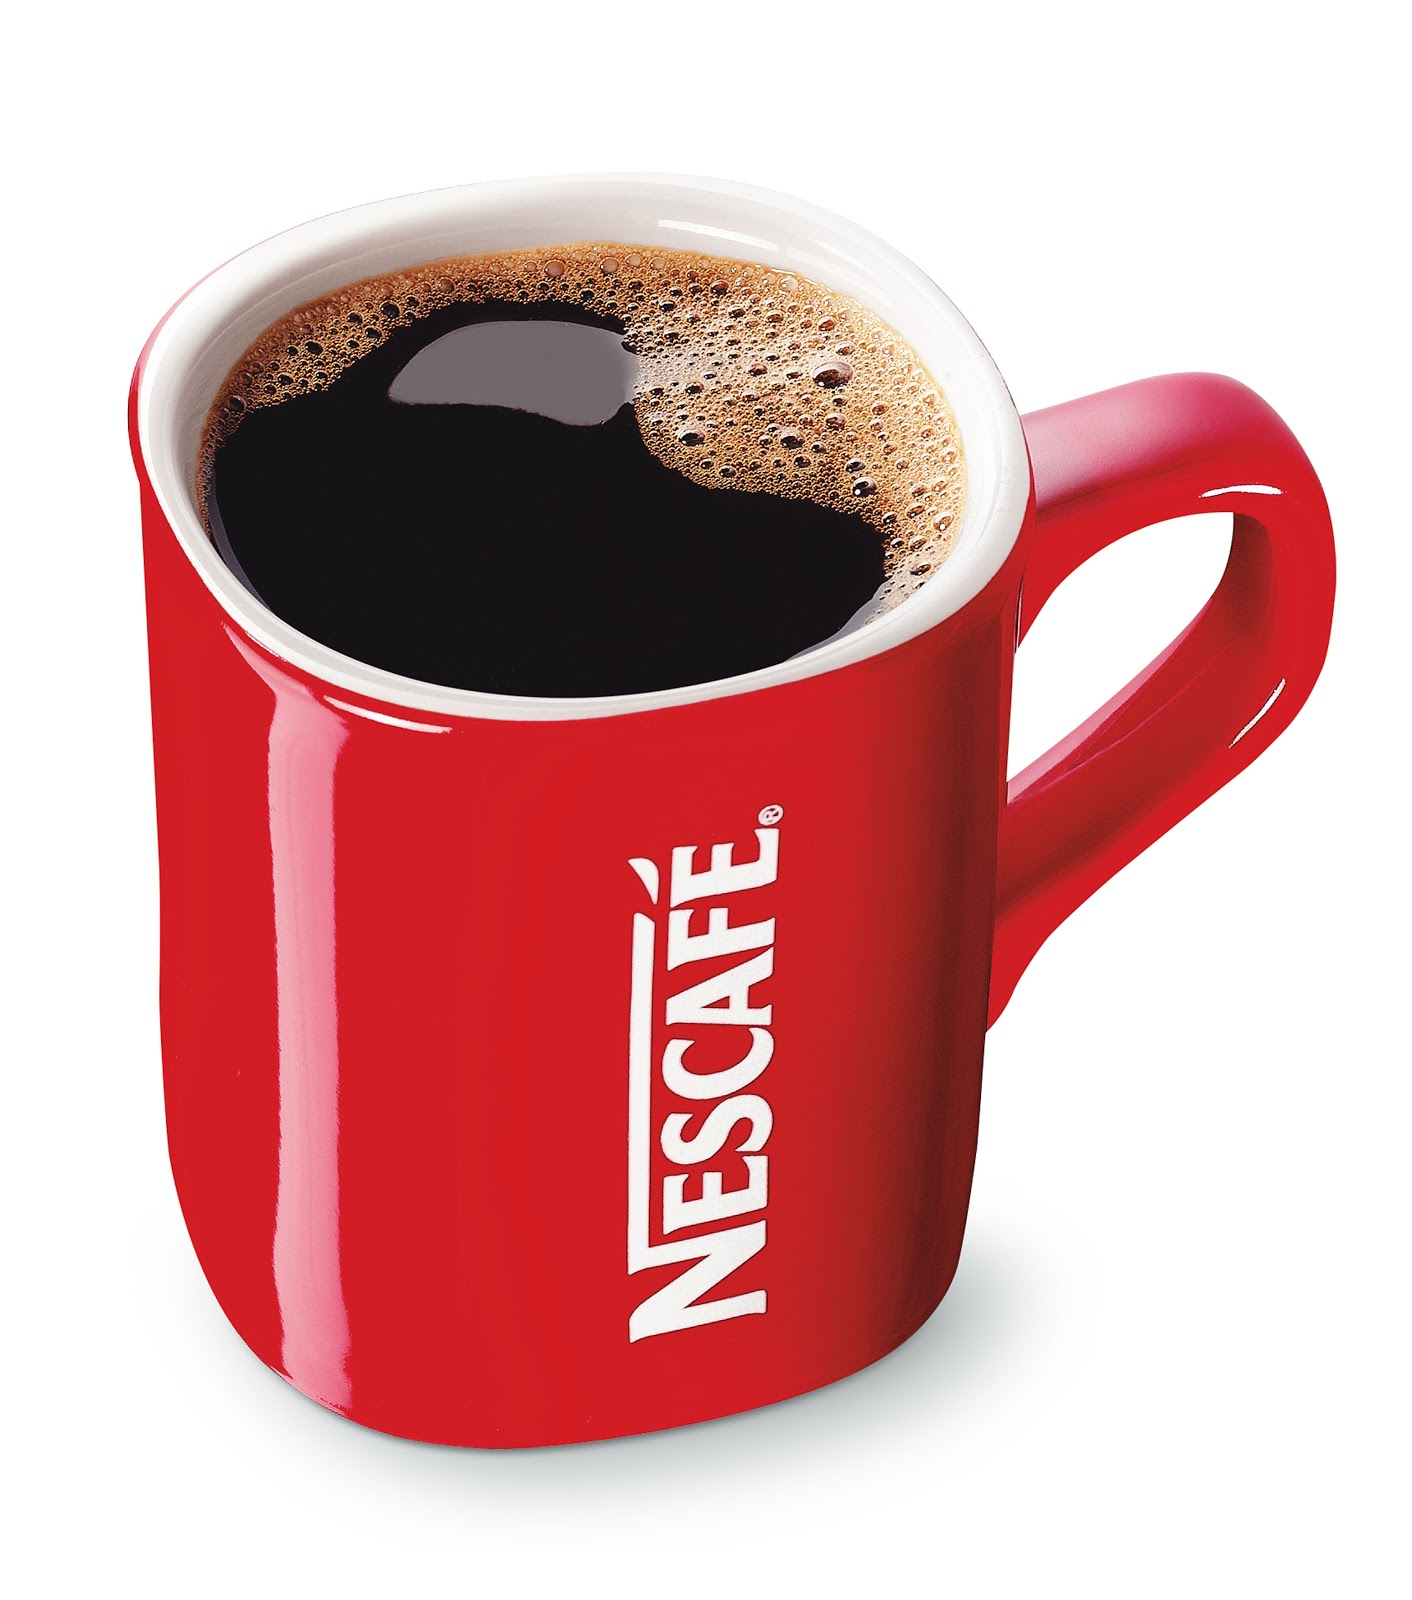 brand and nescafe Nescafe launched under the umbrella brand of nestle it offers its buyers premium roasted coffee the strategy that nescafe took was to offer a different and better taste of coffee at an affordable price.